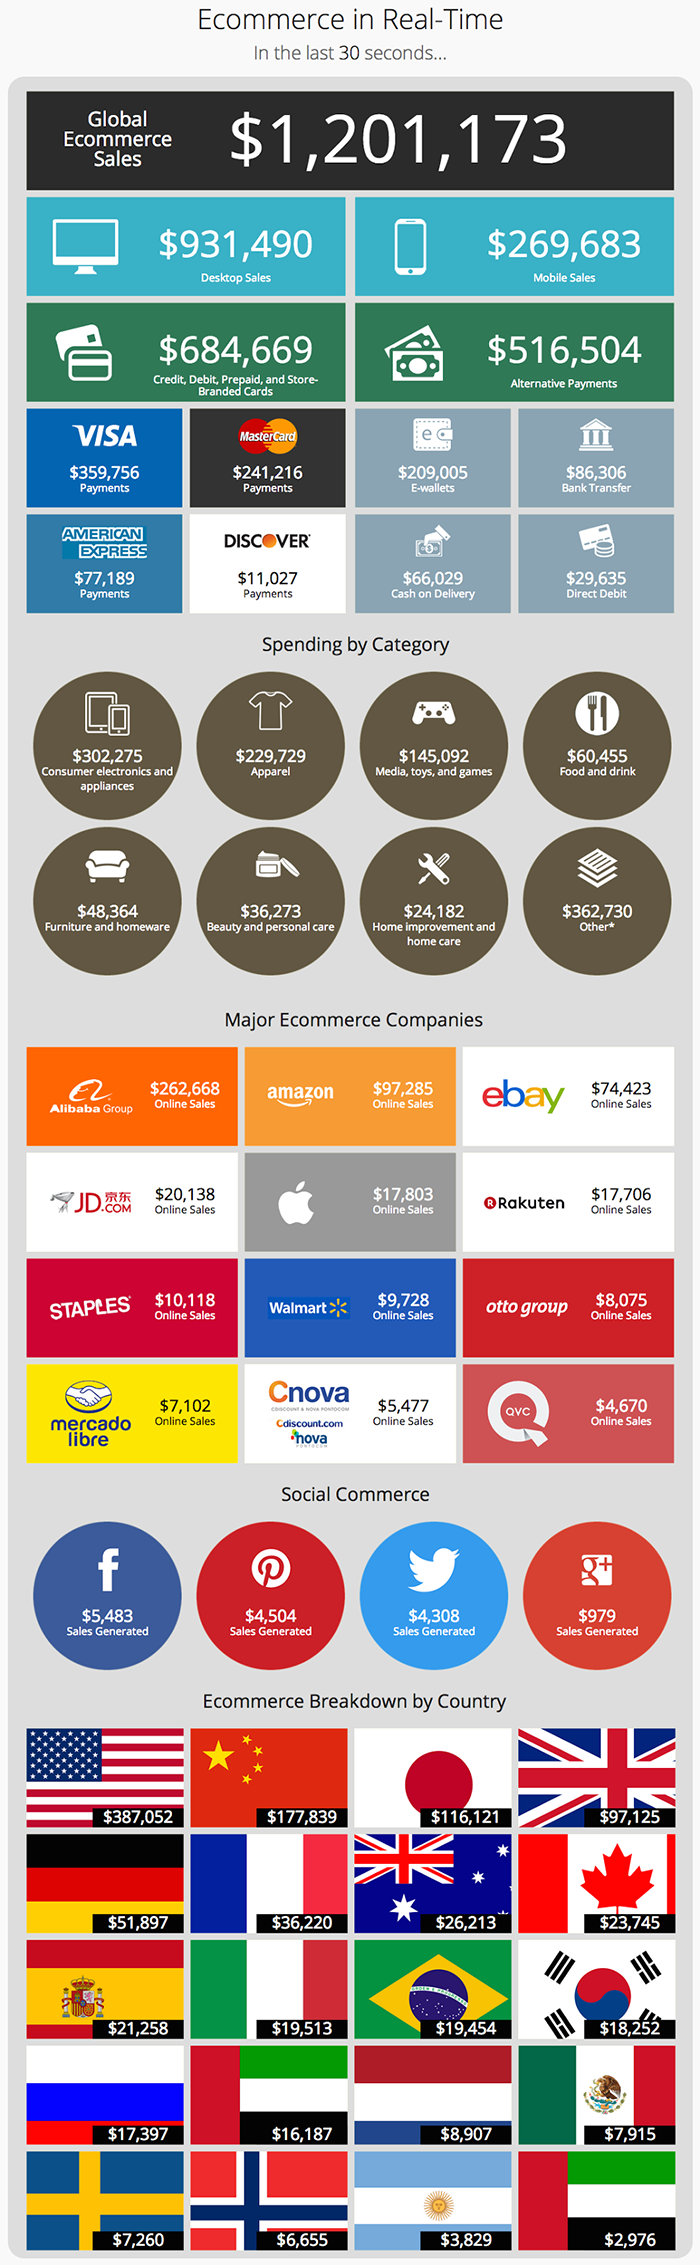 data-visulization-Ecommerce-in-Real-Time-How-Money-is-Spent-on-the-Internet-interactive-infographic